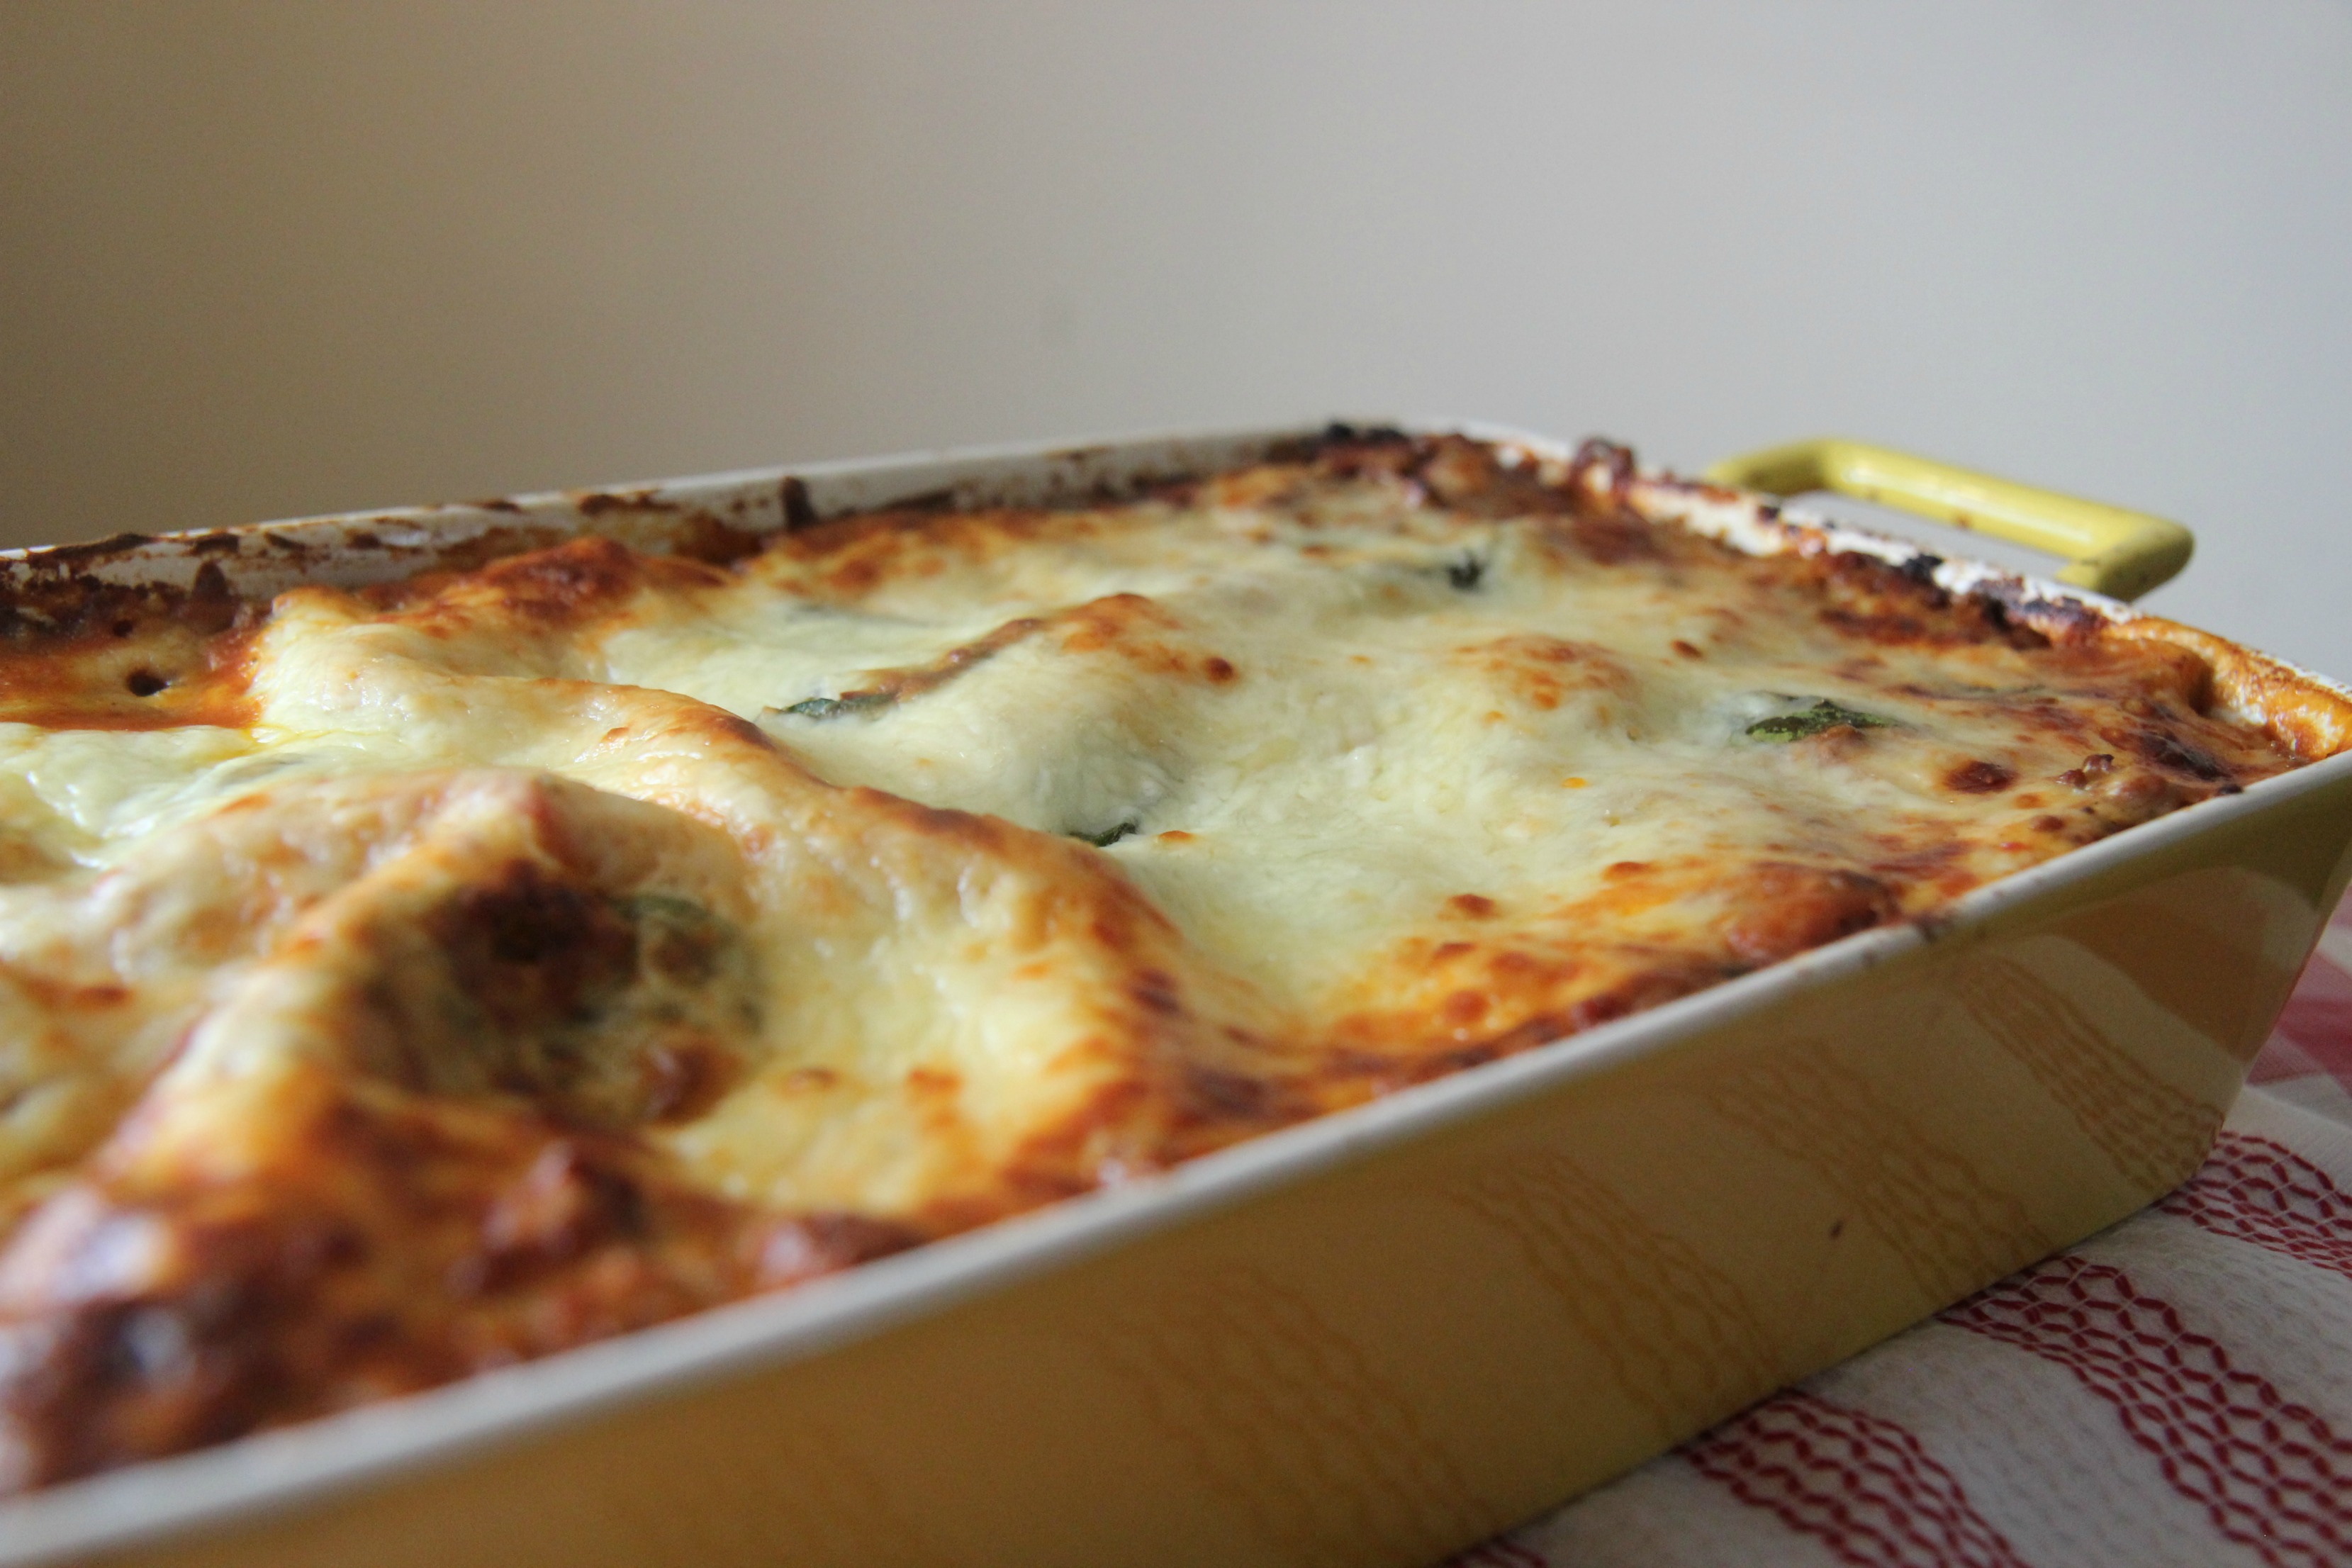 Looking for the best lasagna recipe? I made this with a bechamel sauce that is creamy and cheesy and the perfect addition to this recipe.